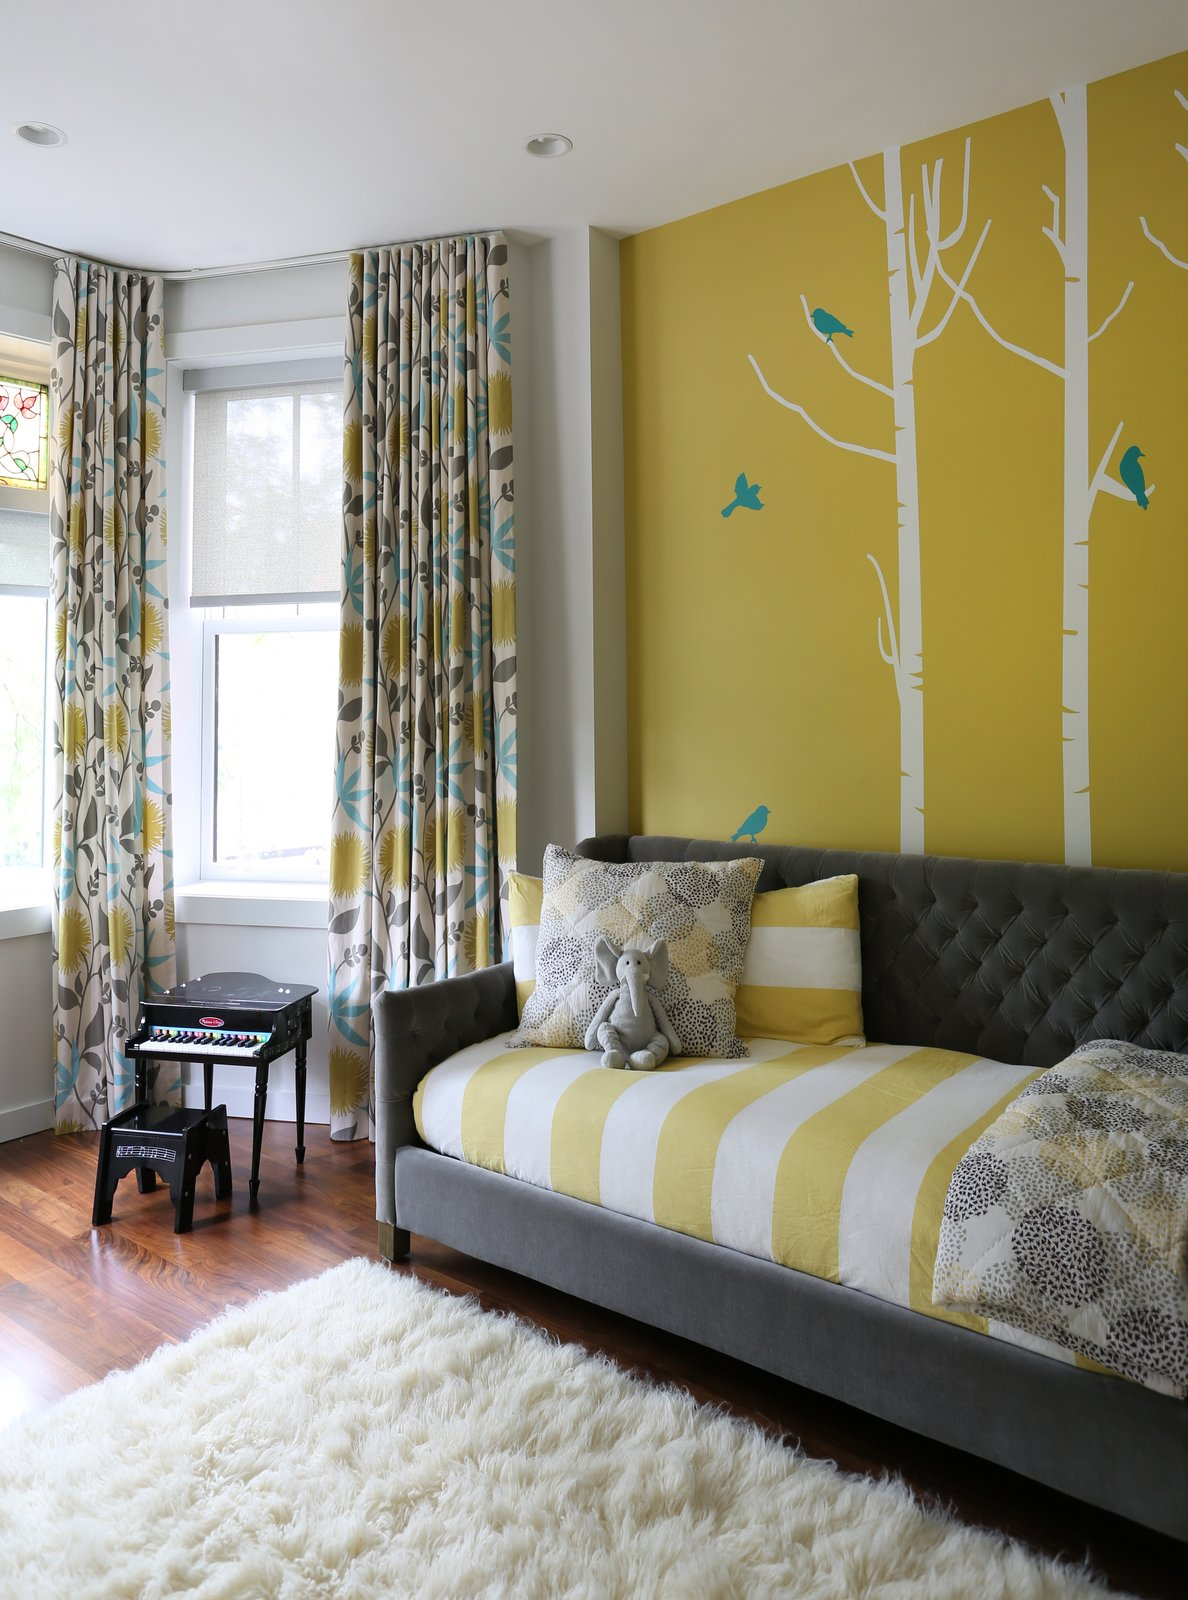 """Fisher characterizes the house as having an """"understated niceness"""" to it. """"The clients wanted everything nice, but not precious,"""" Fisher says. """"A comfortable and functional home that has hints of fun and colorful interjections—just like them."""" Here, a painted wall with decals purchased on Etsy, Restoration Hardware's Devyn Daybed, a Flokati rug from gilt.com, and custom drapery by Workroom Couture Home mix with a toy piano that's been in the family for years.  Lakeview by Diana Budds"""